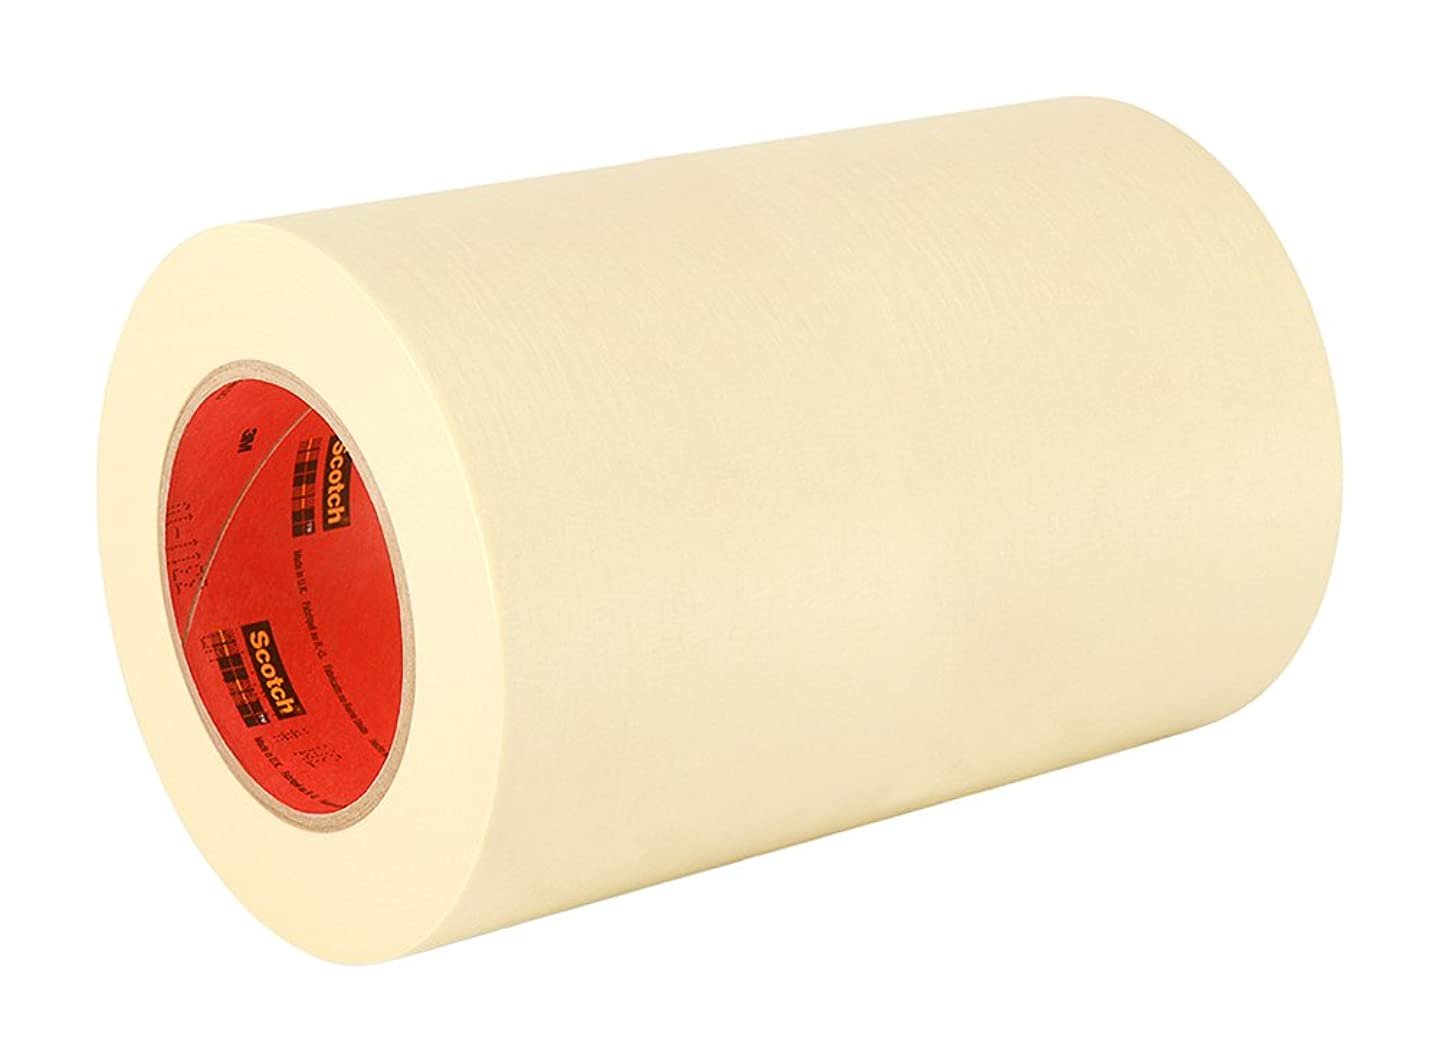 3M 200 Utility Purpose Paper Tape - 8 in. x 180 ft. Crepe Paper Masking Tape Roll. Bonding Tapes